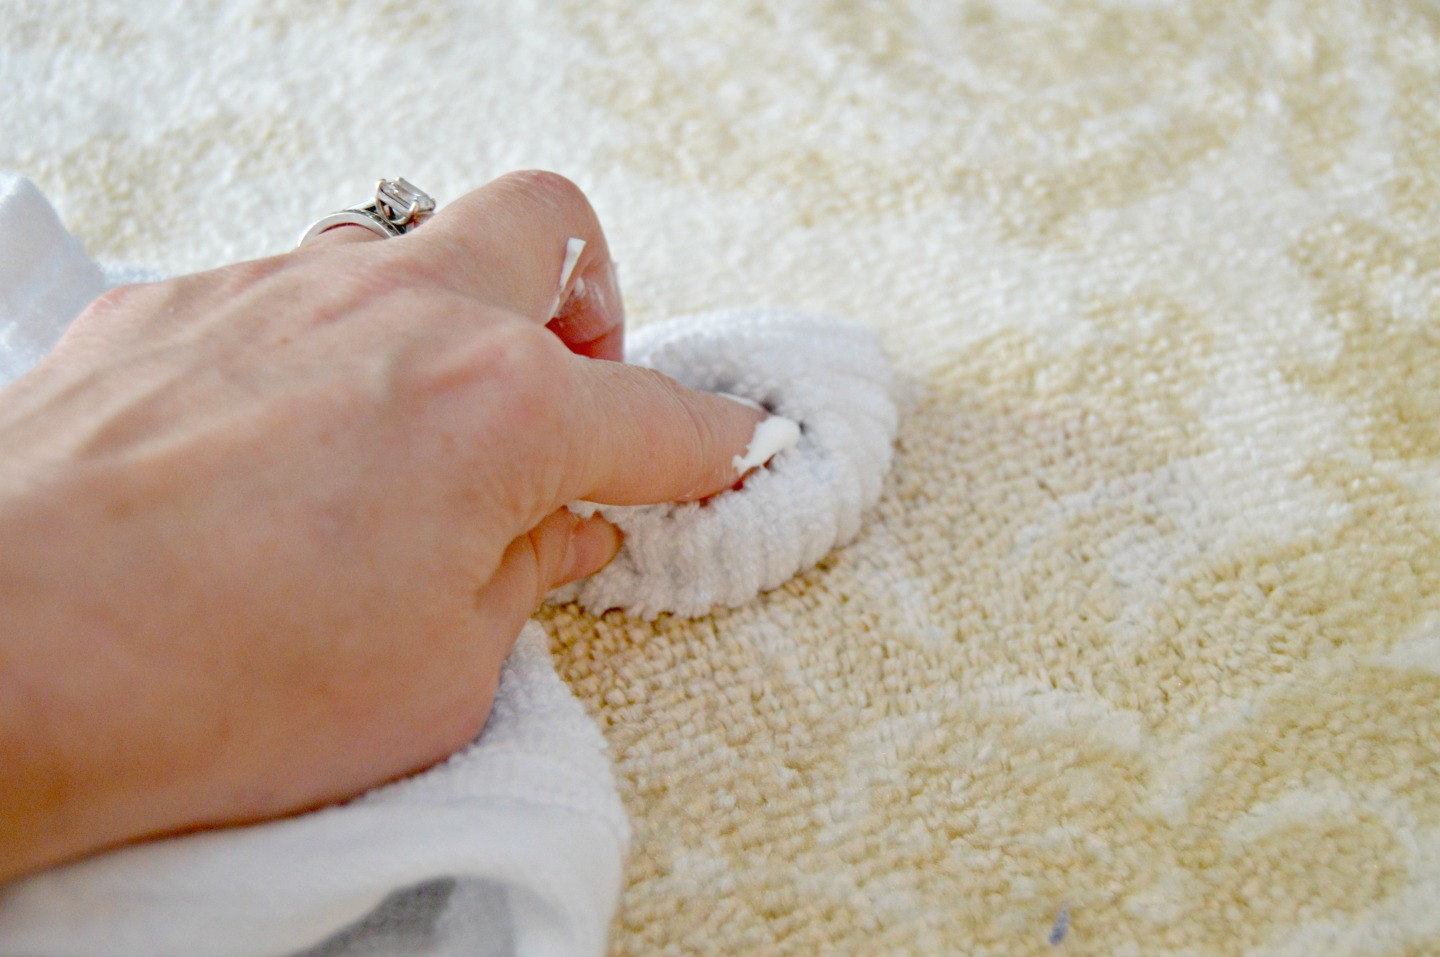 How to clean carpet stains quickly mom 4 real - Remove carpet stains ...